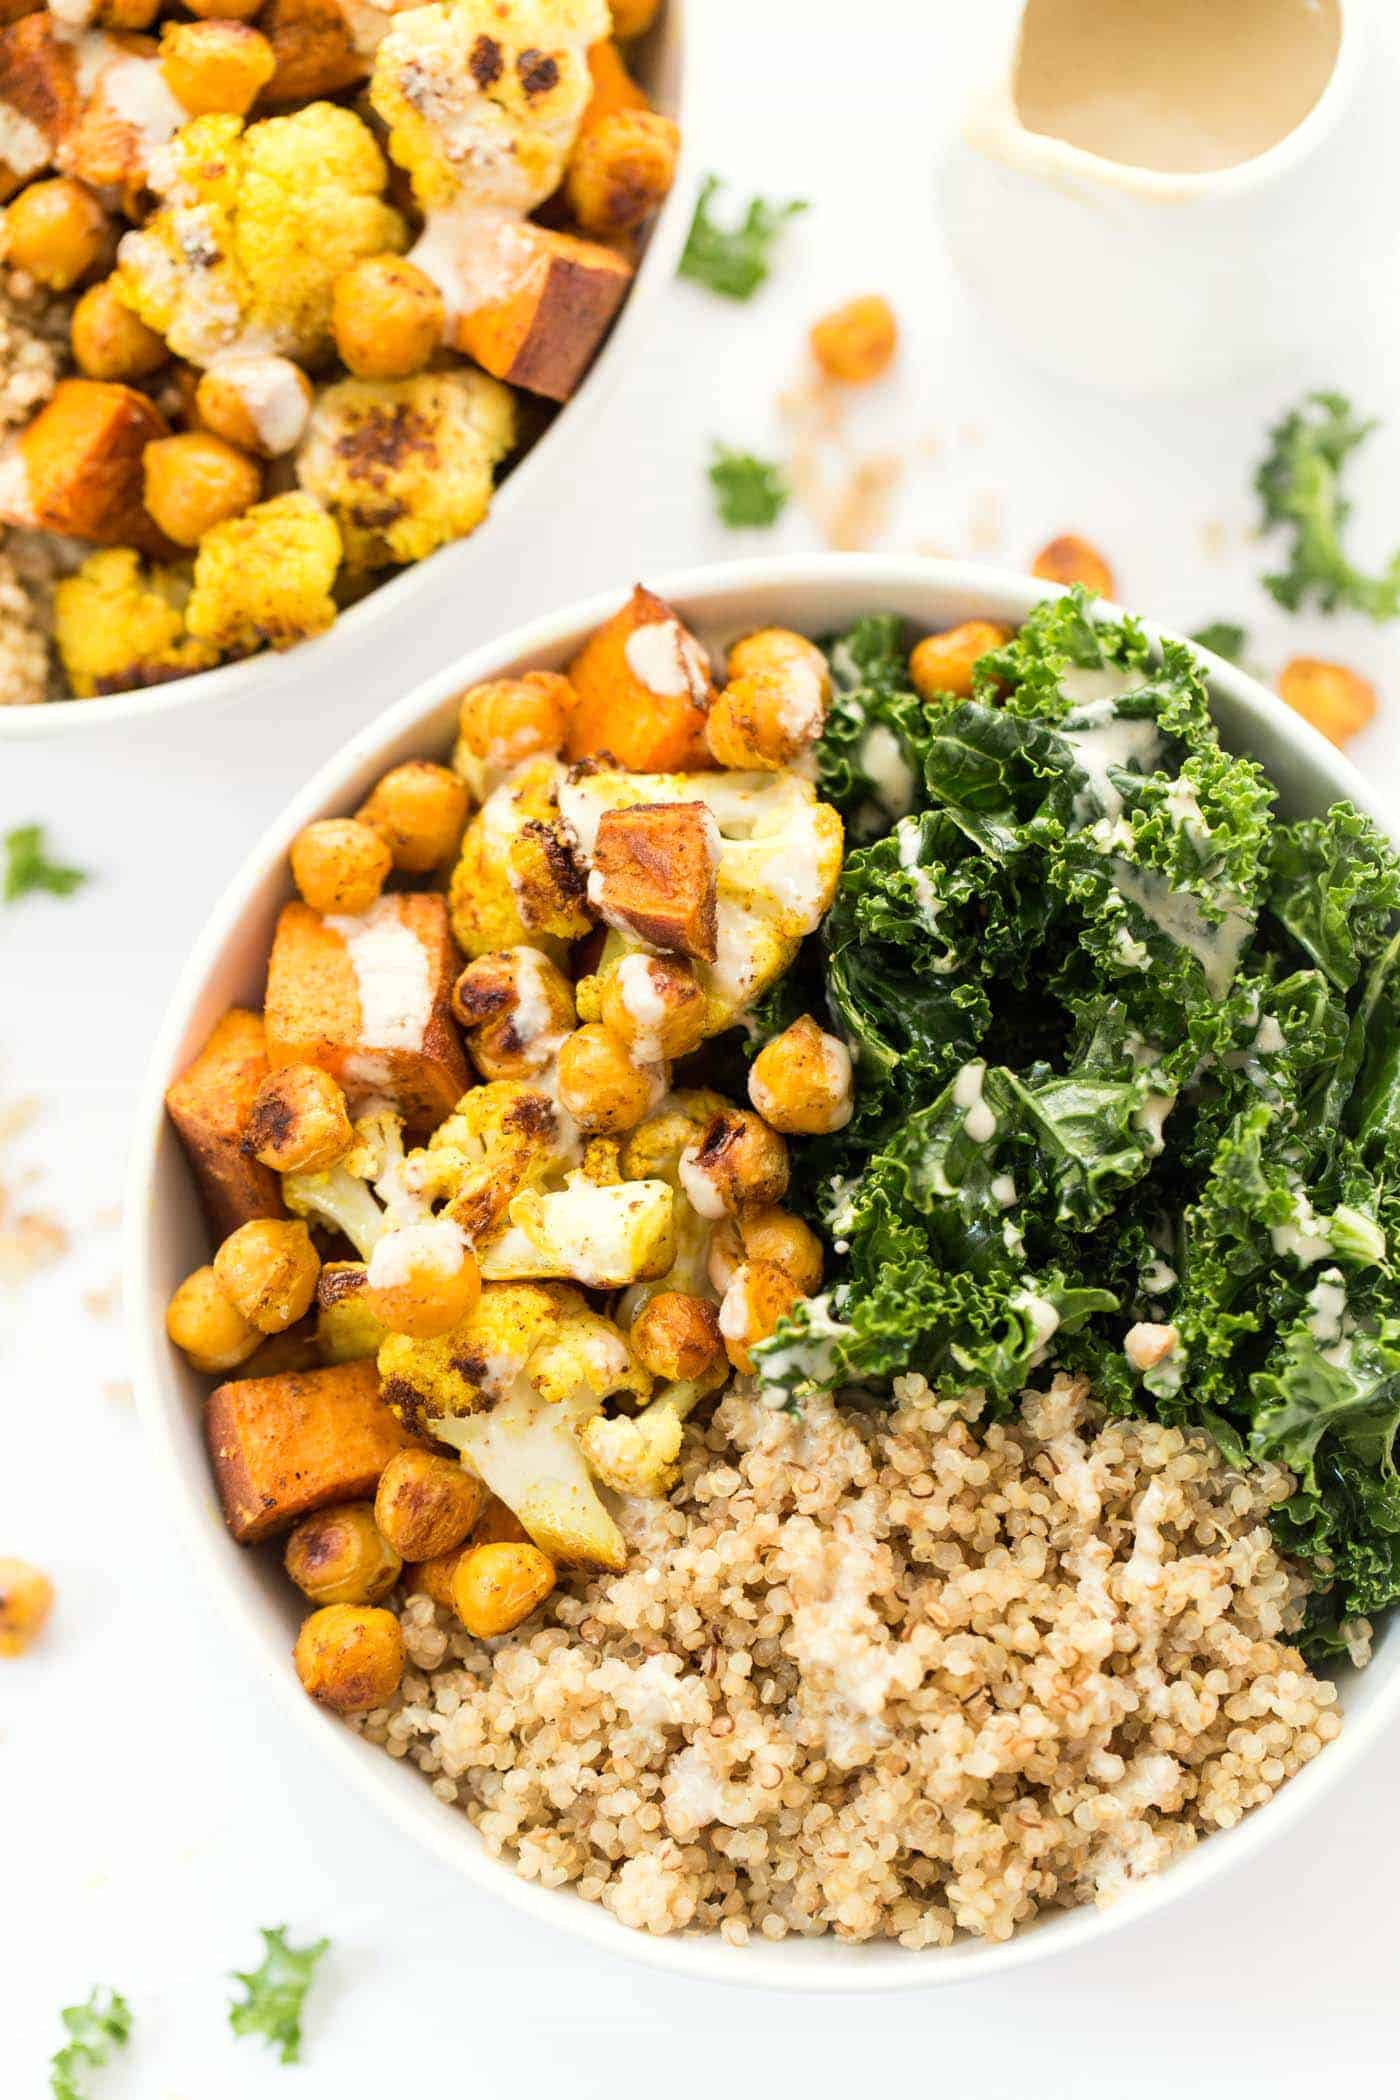 Curry Roasted Vegetable Quinoa bowls with cauliflower, sweet potatoes, chickpeas, kale and a creamy tahini dressing!